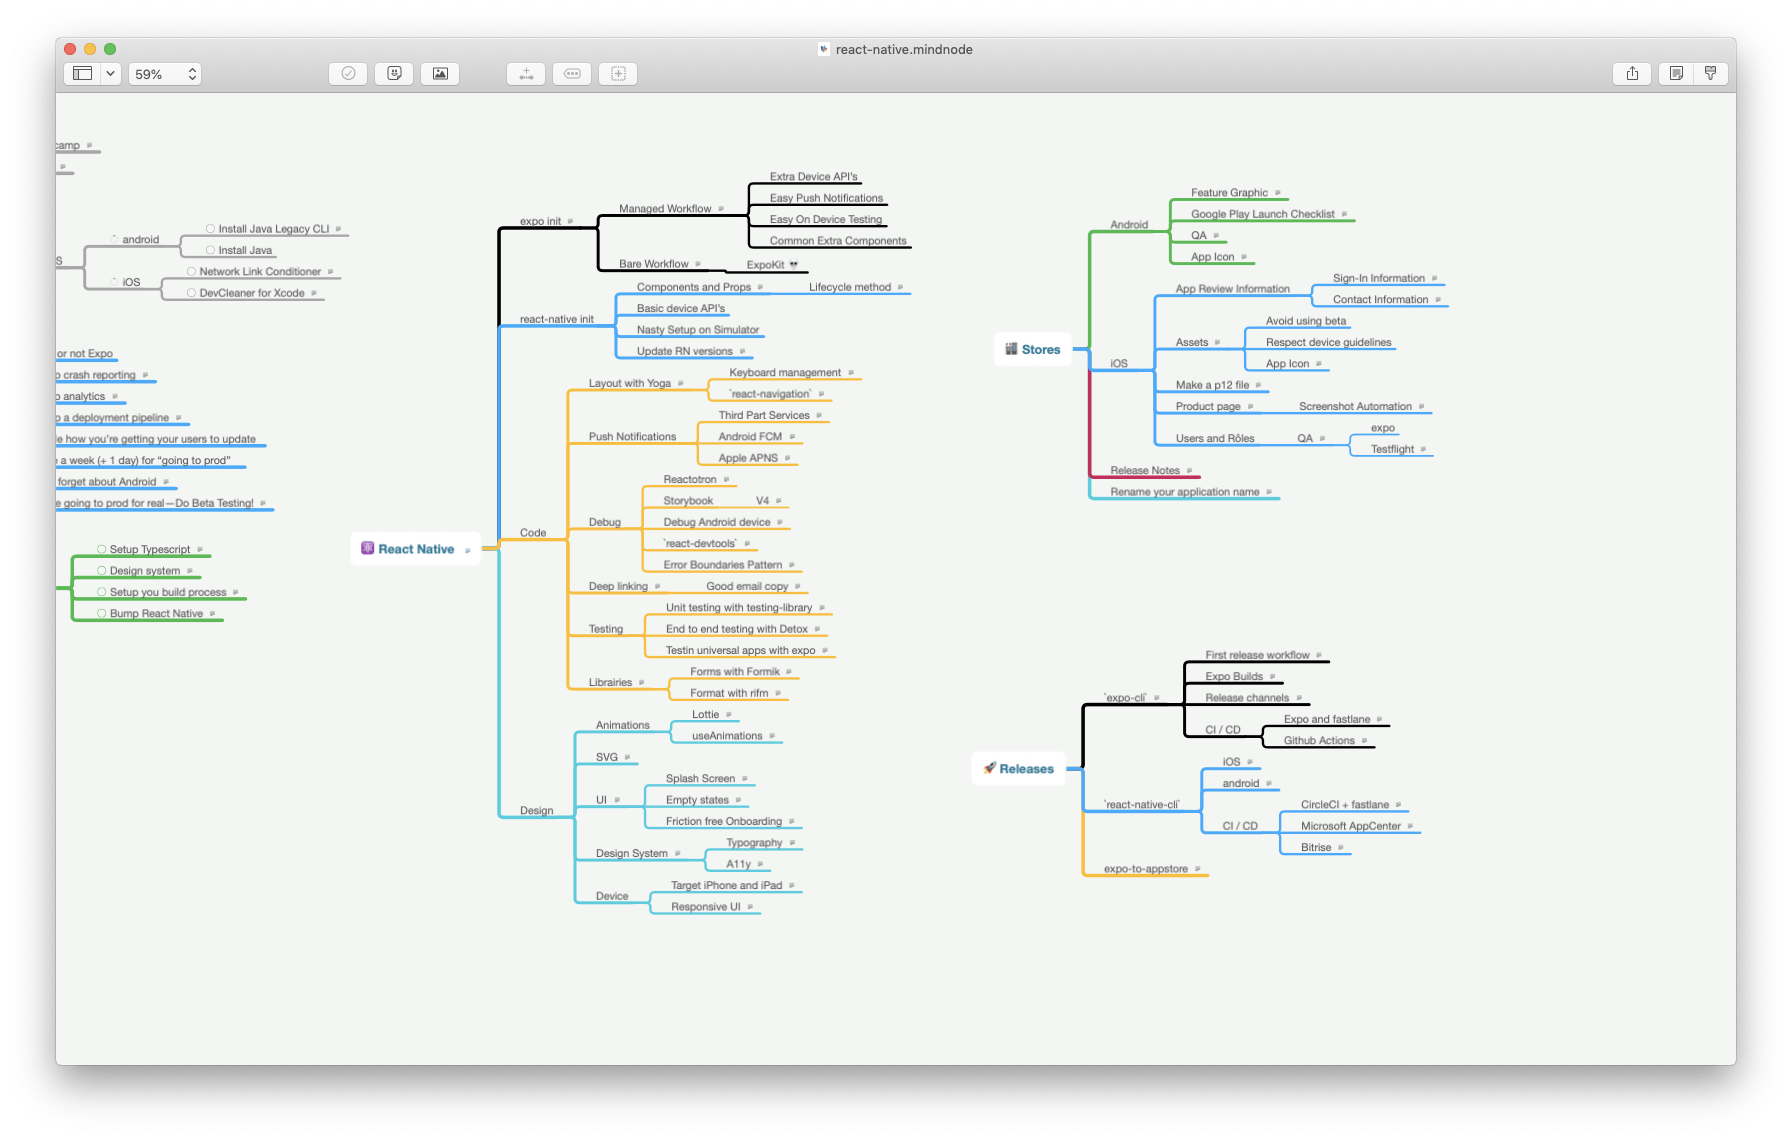 David's mind map of React resources